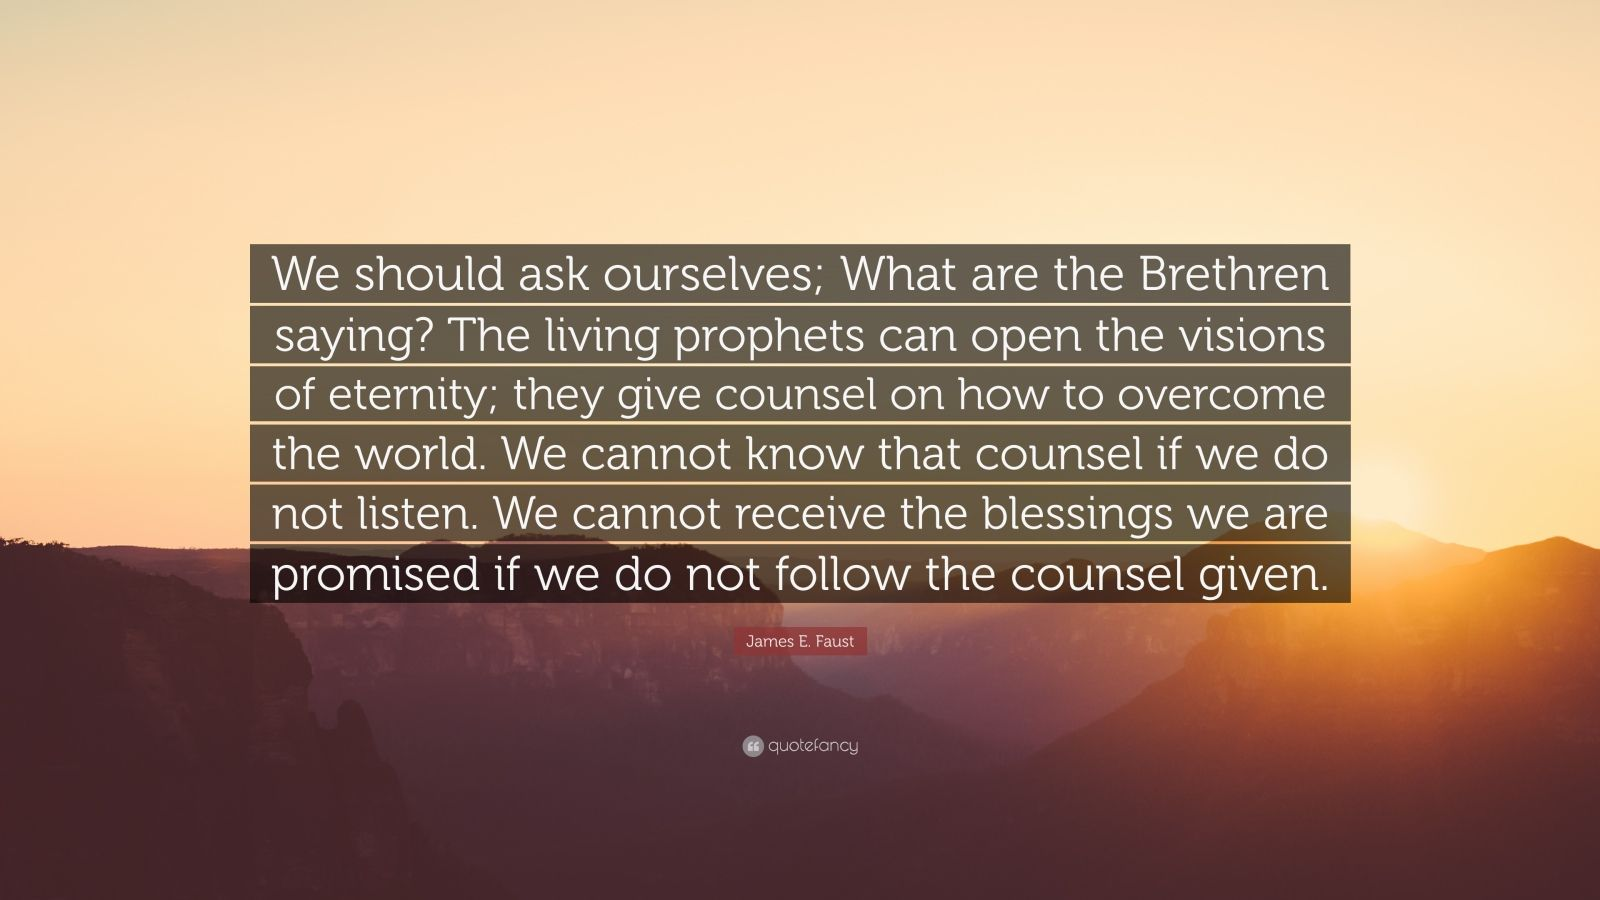 """James E. Faust Quote: """"We should ask ourselves; What are the Brethren saying? The living prophets can open the visions of eternity; they give counsel on how to overcome the world. We cannot know that counsel if we do not listen. We cannot receive the blessings we are promised if we do not follow the counsel given."""""""